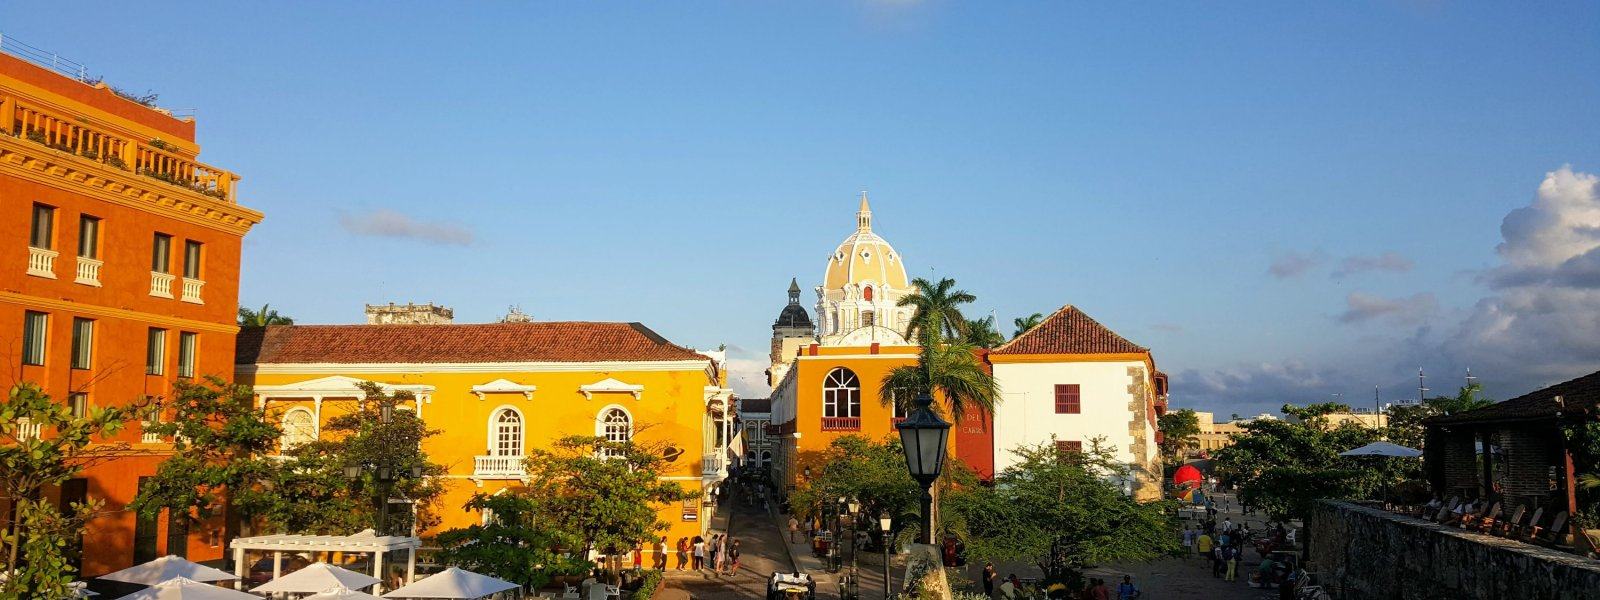 Cartagena – Hot and Touristy